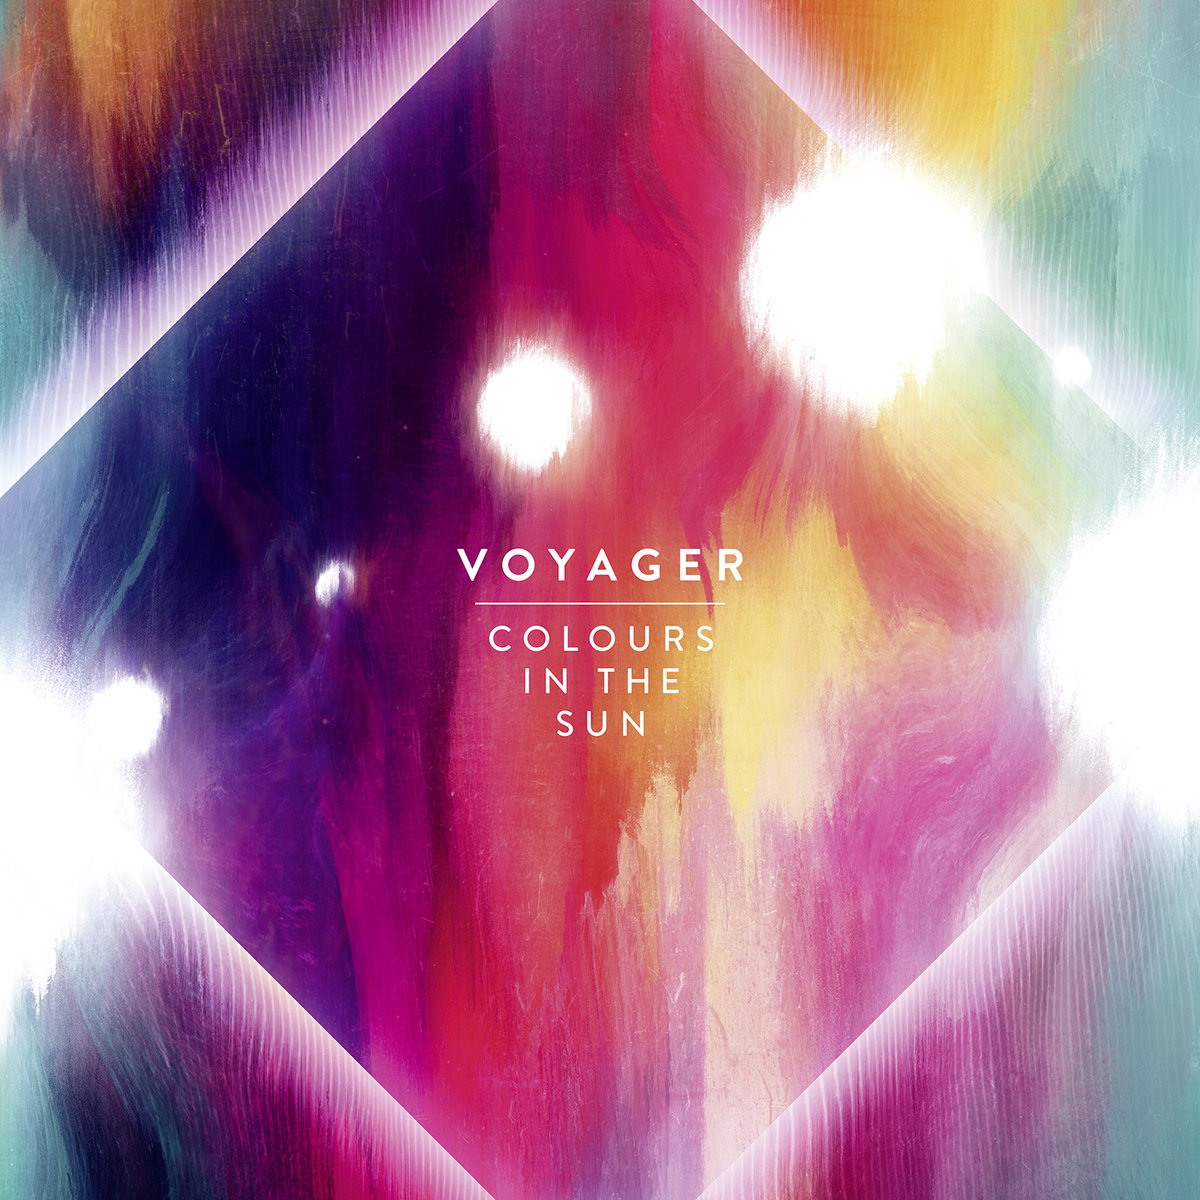 Voyager: Colours in the Sun